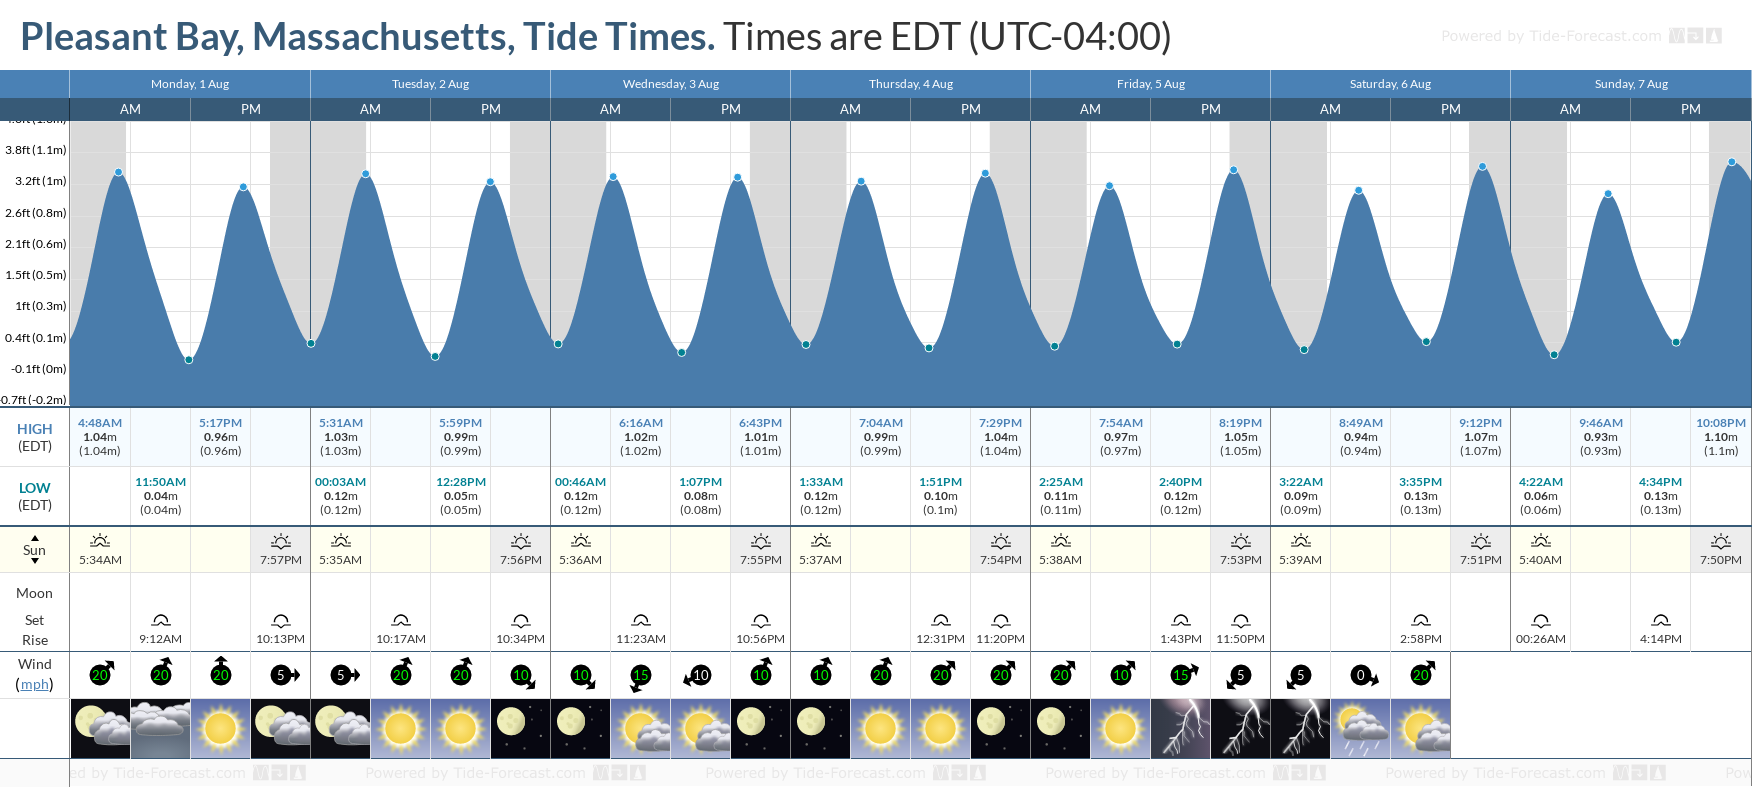 Pleasant Bay, Massachusetts Tide Chart including high and low tide tide times for the next 7 days